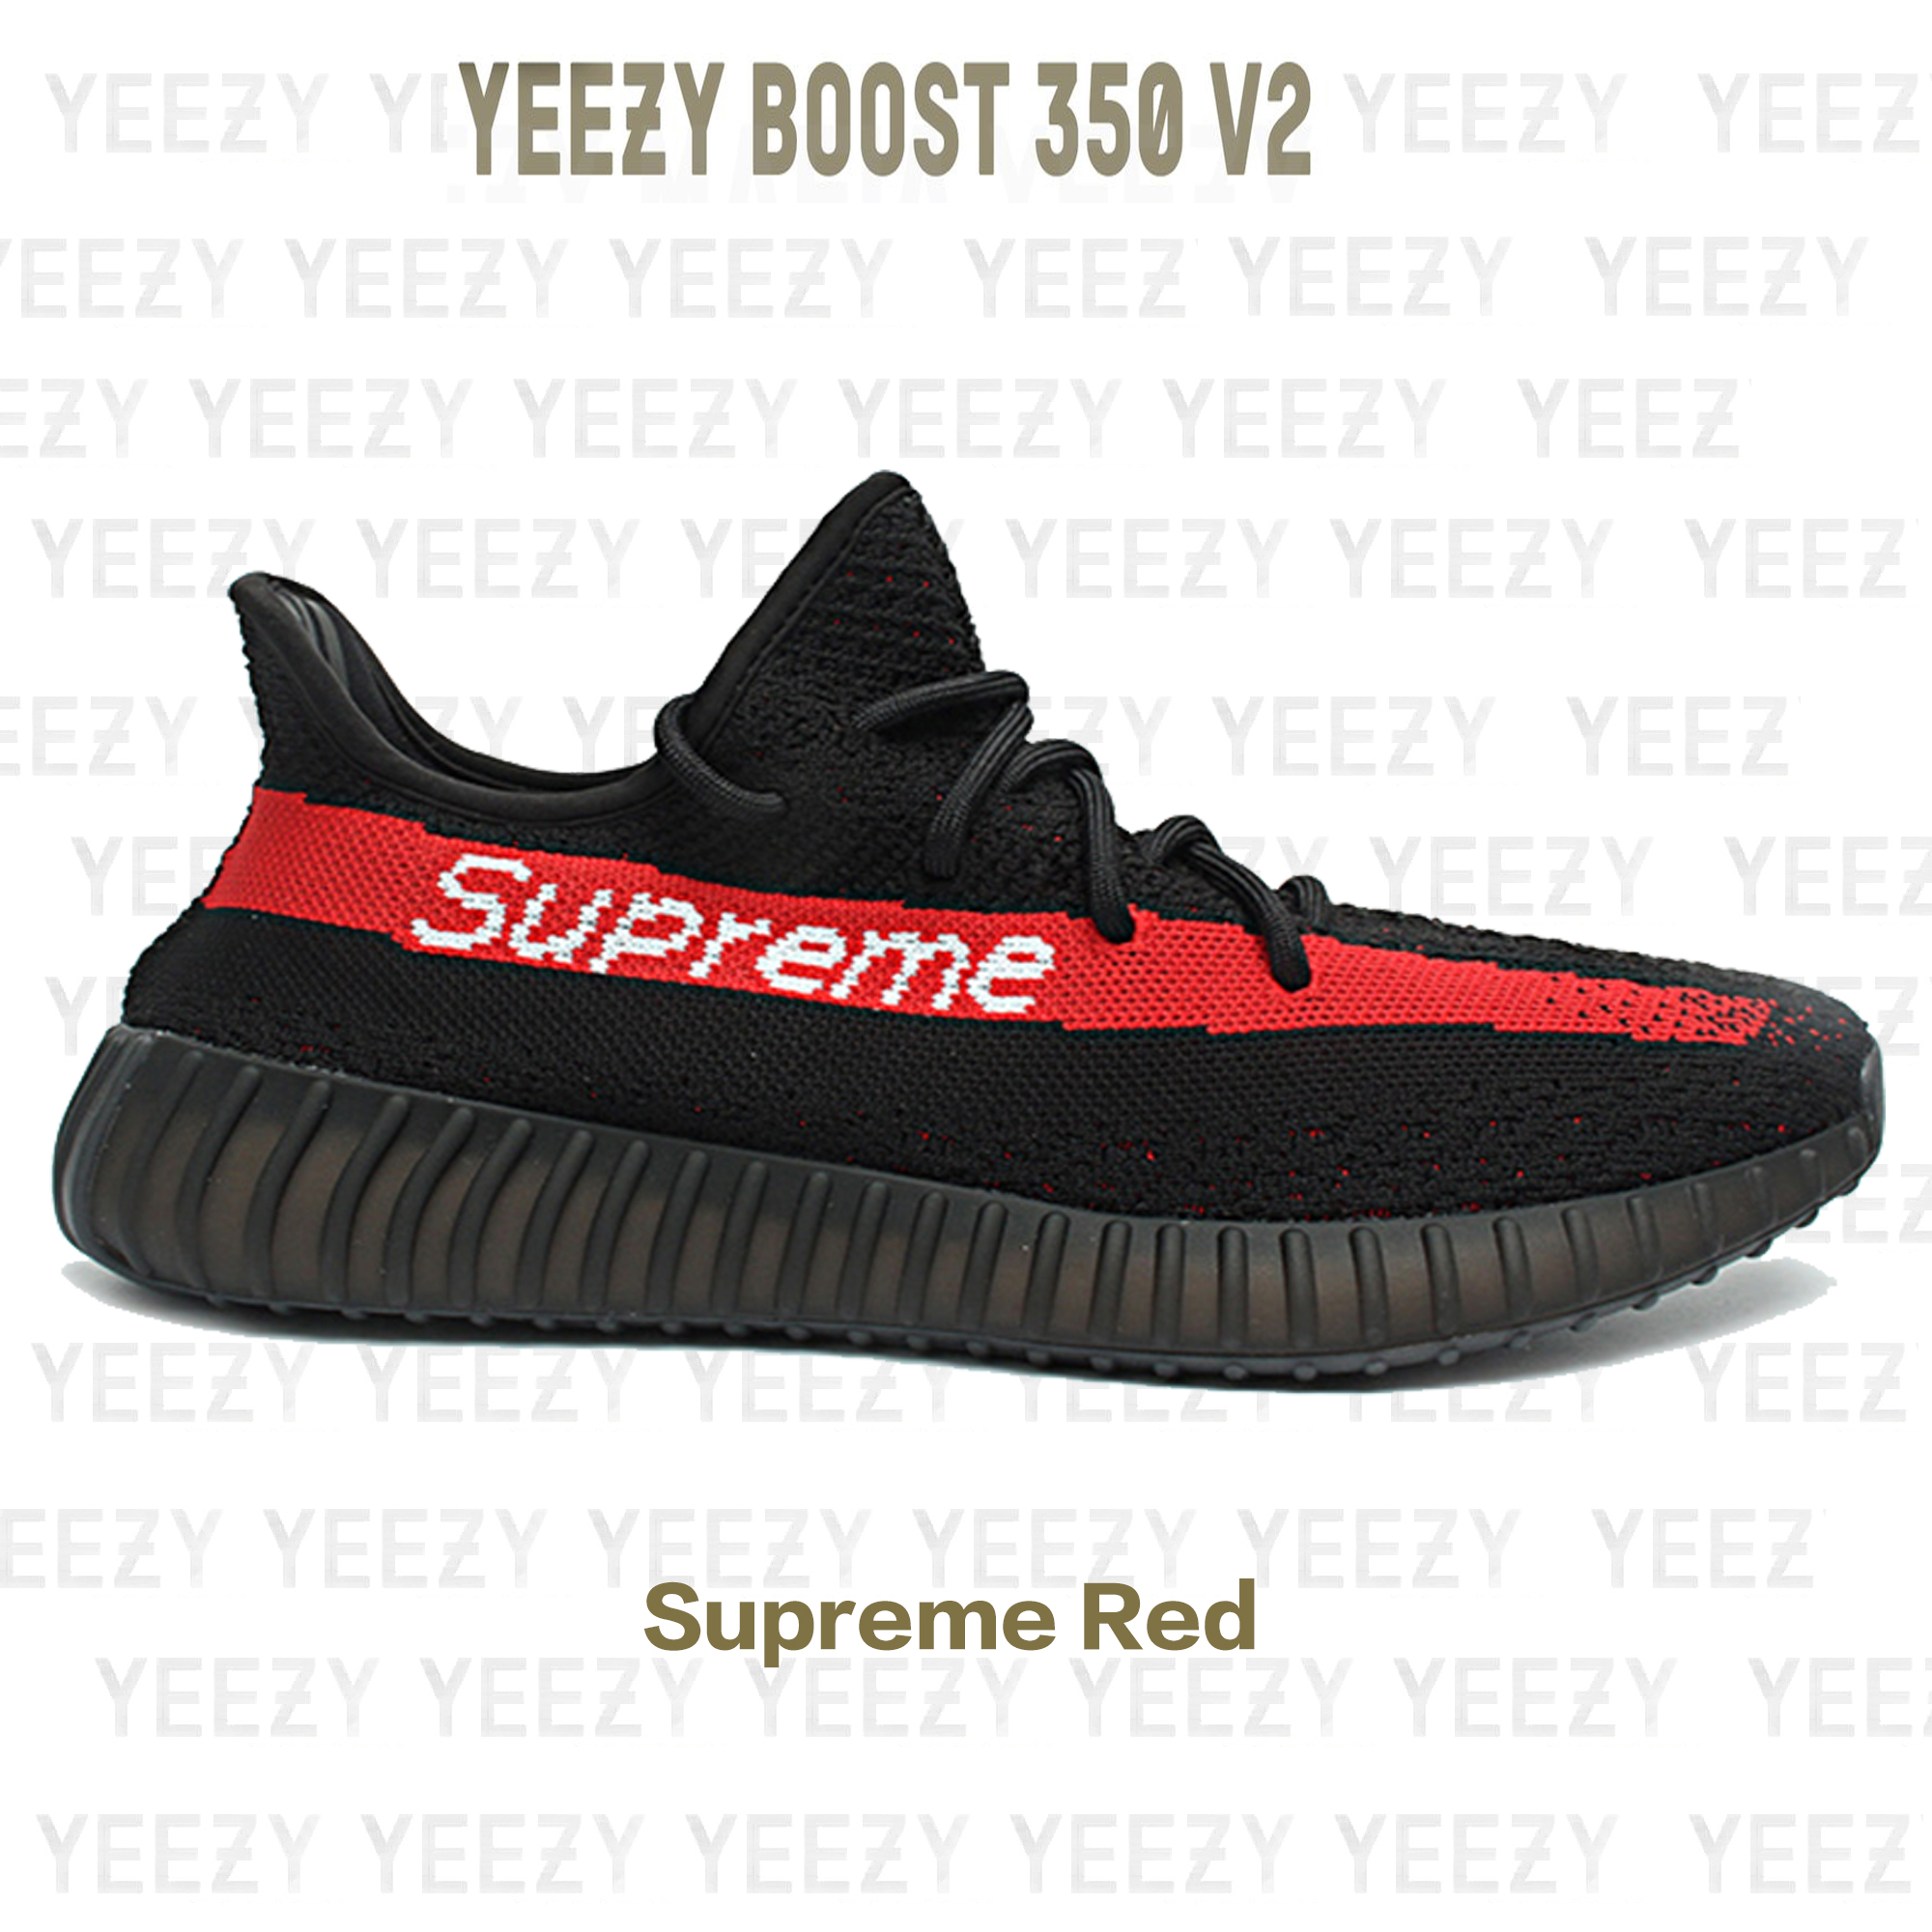 Yeezy 20boost 20350 20v2 20supreme 20red 20(1) original 8a7807d35